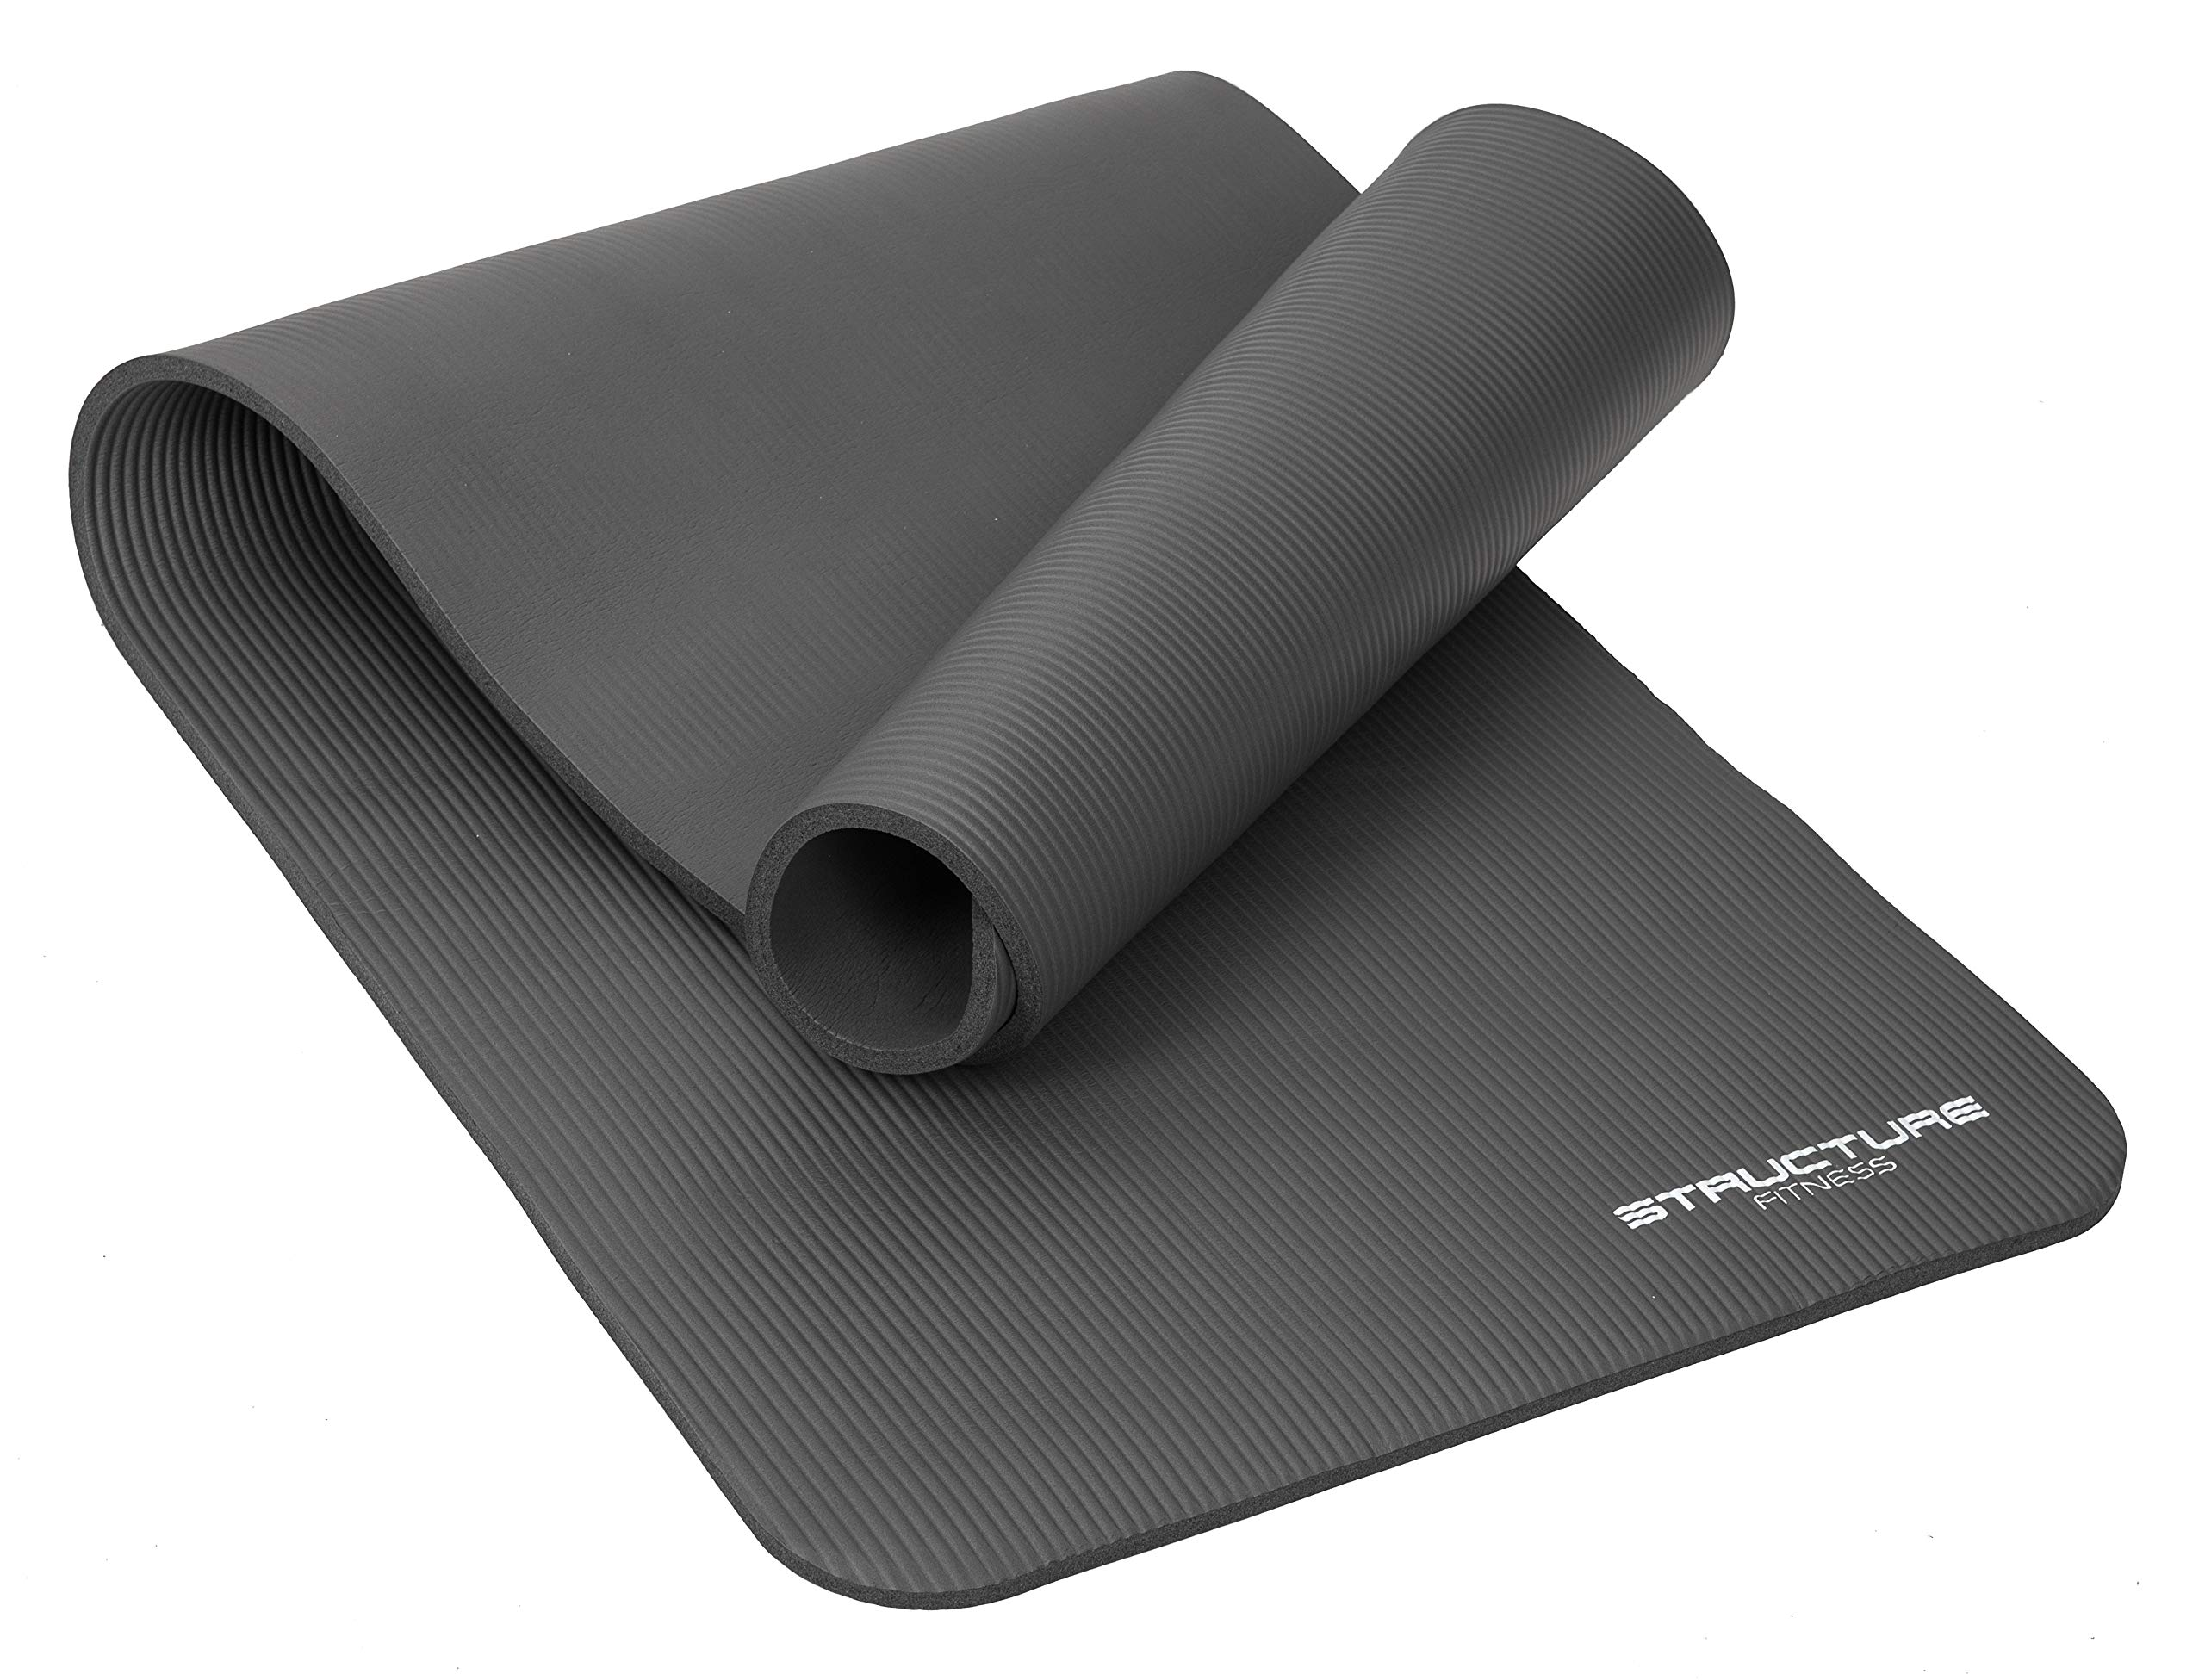 Indoor Outdoor Workout Mat with Free Carry Strap Lions Exercise Yoga Mats 183 x 61 x 0.6cm Non Slip 6mm Extra-Thick Home Gym Pilates